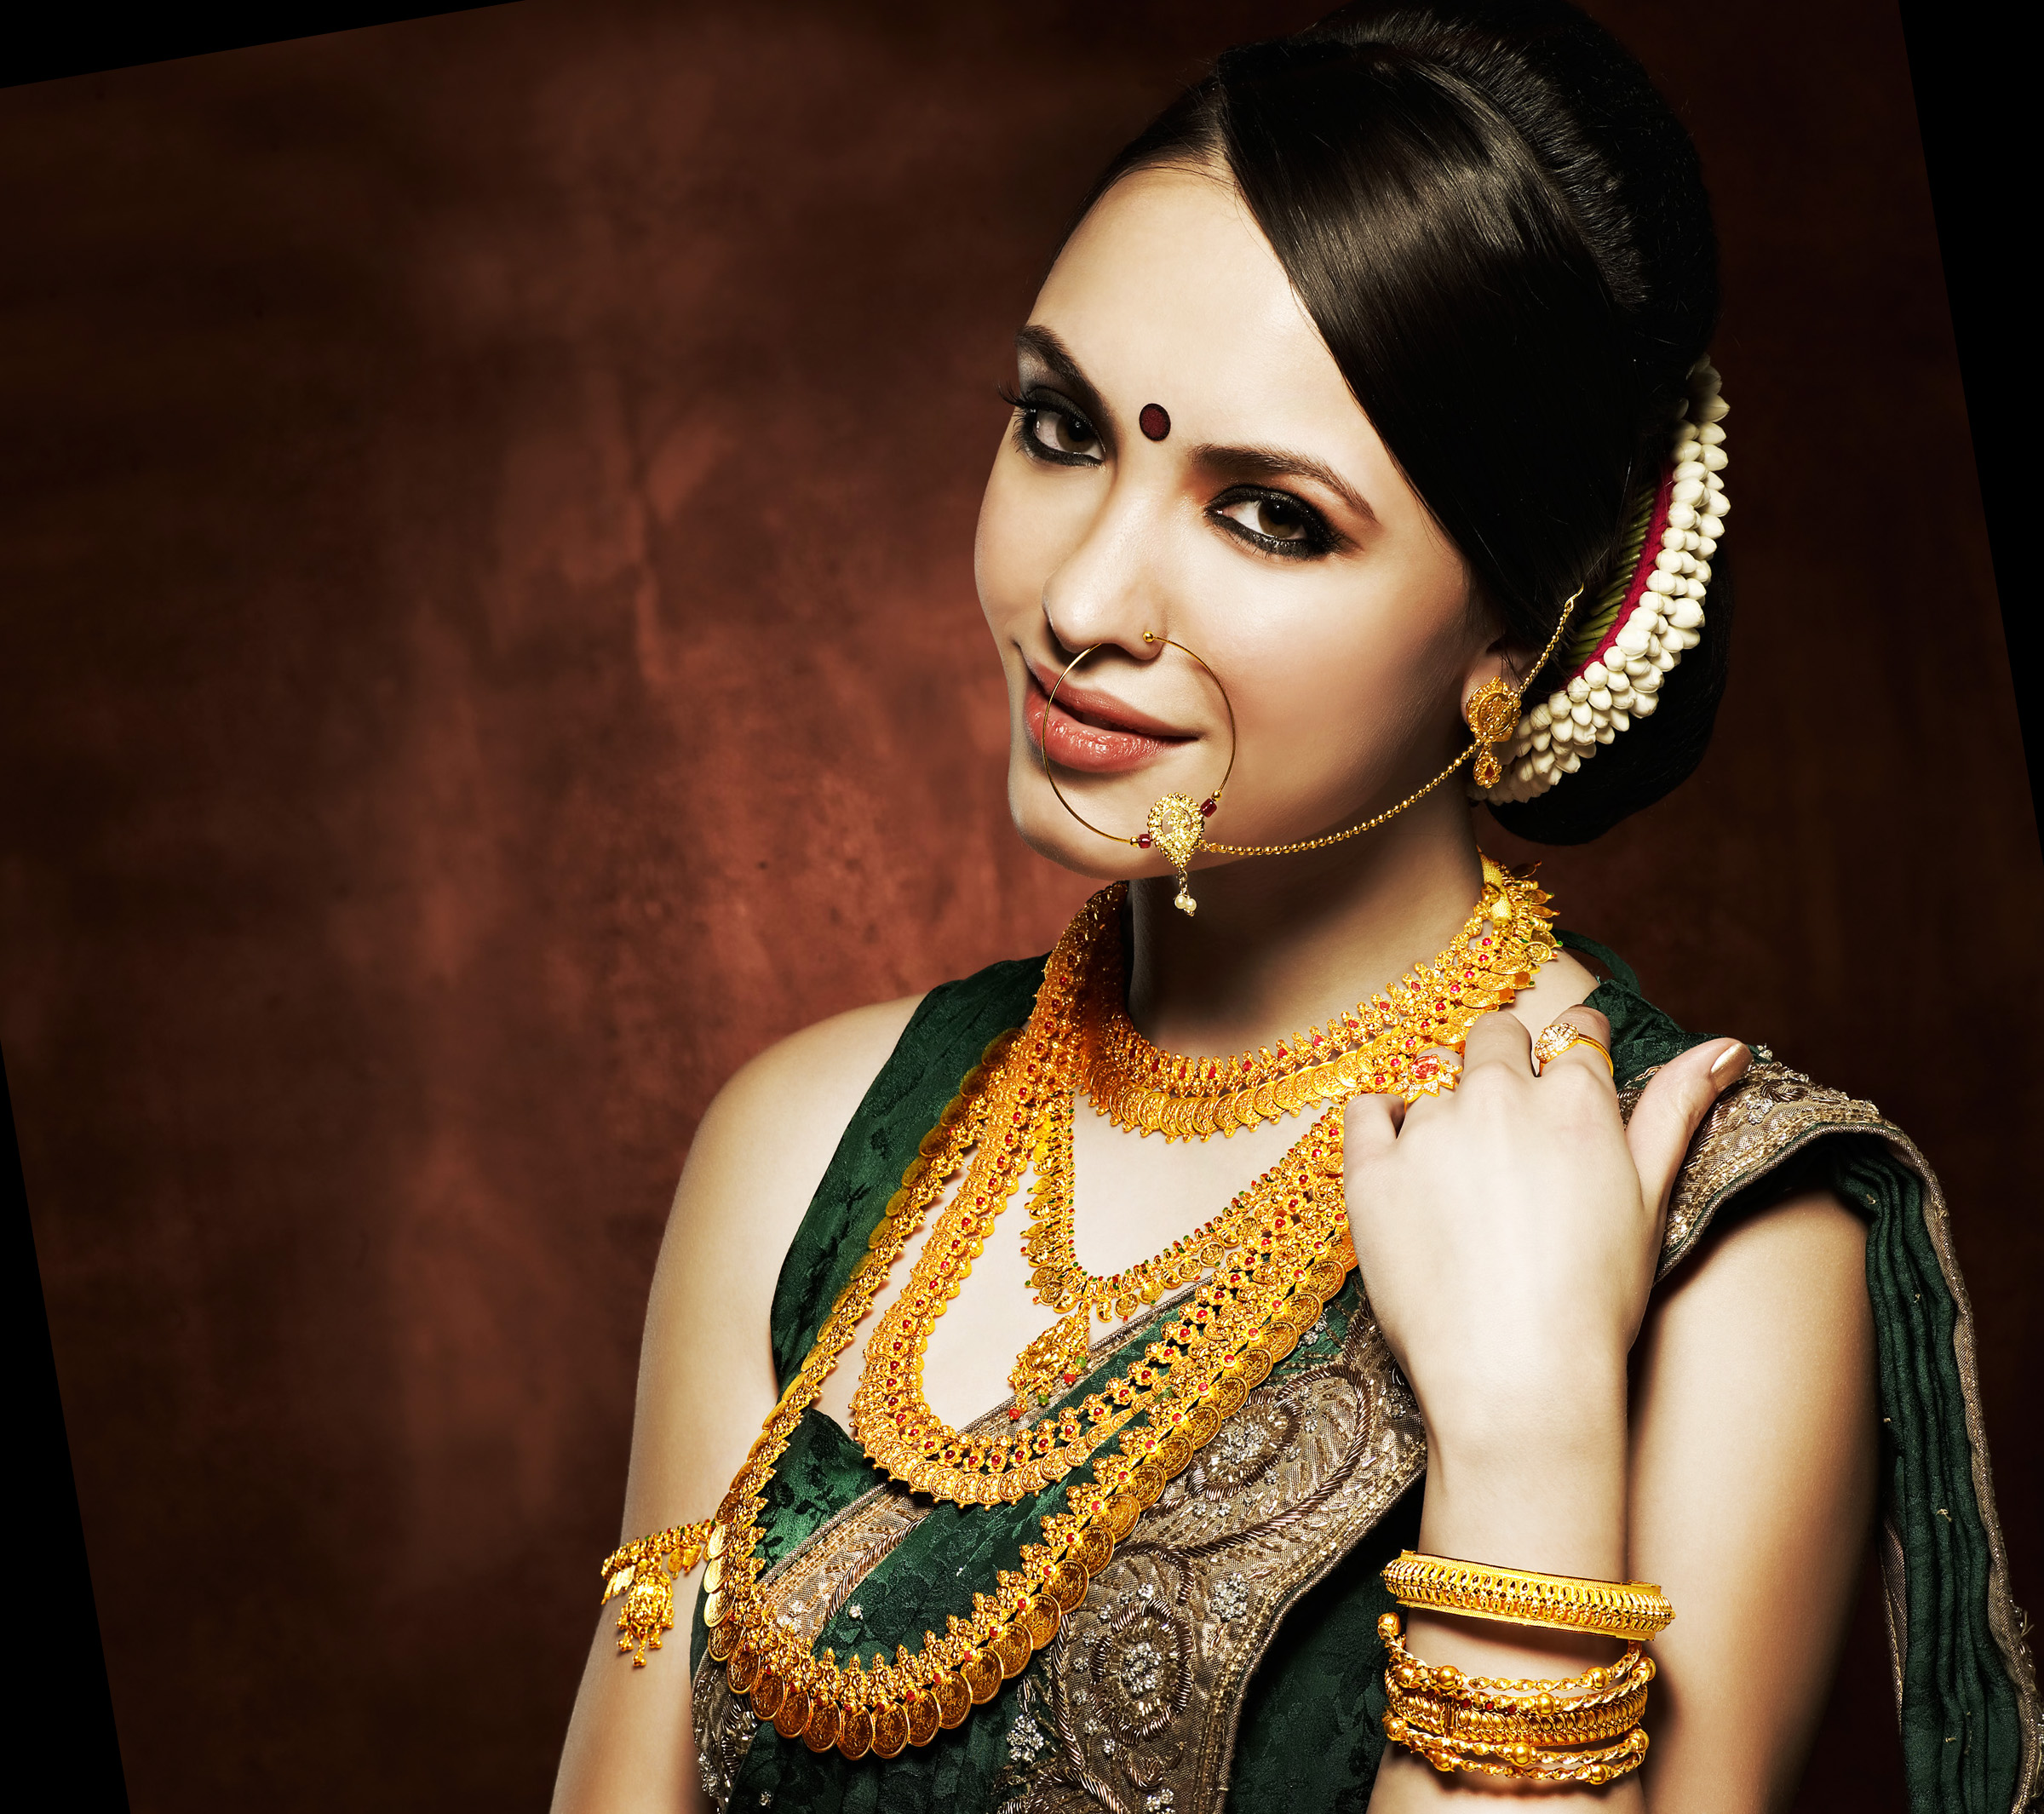 Hd Wallpaper The Gallery For Gt Gold Jewellery Models Wallpapers